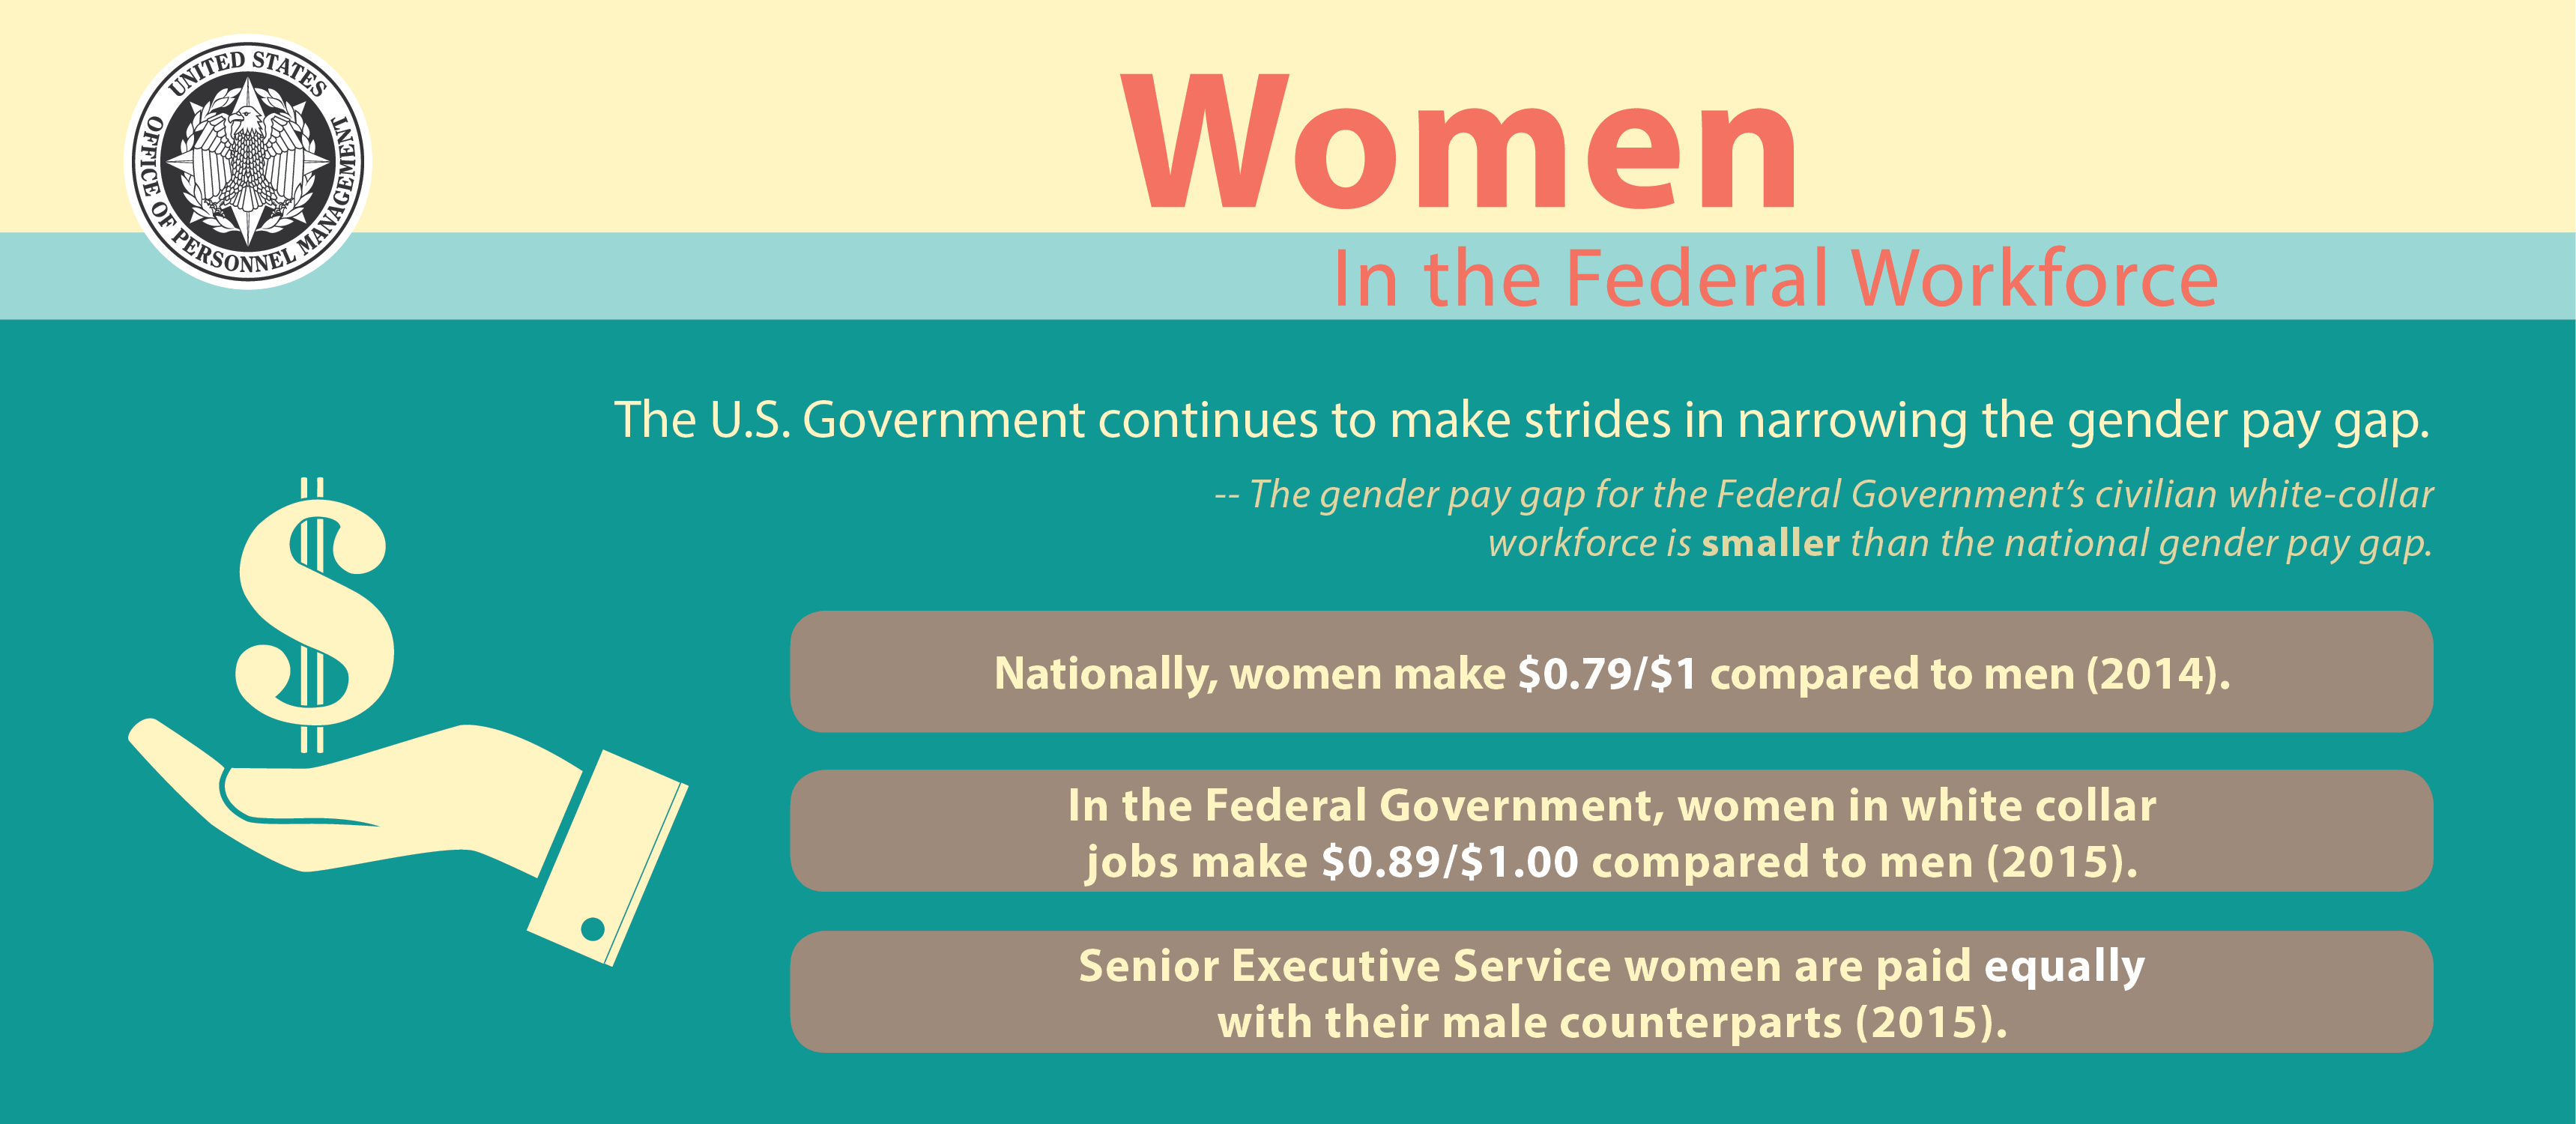 landmark summit highlights federal women s accomplishments the the summit shone a spotlight on the accomplishments women have made in the workplace and on the work still to be done at opm and across the federal